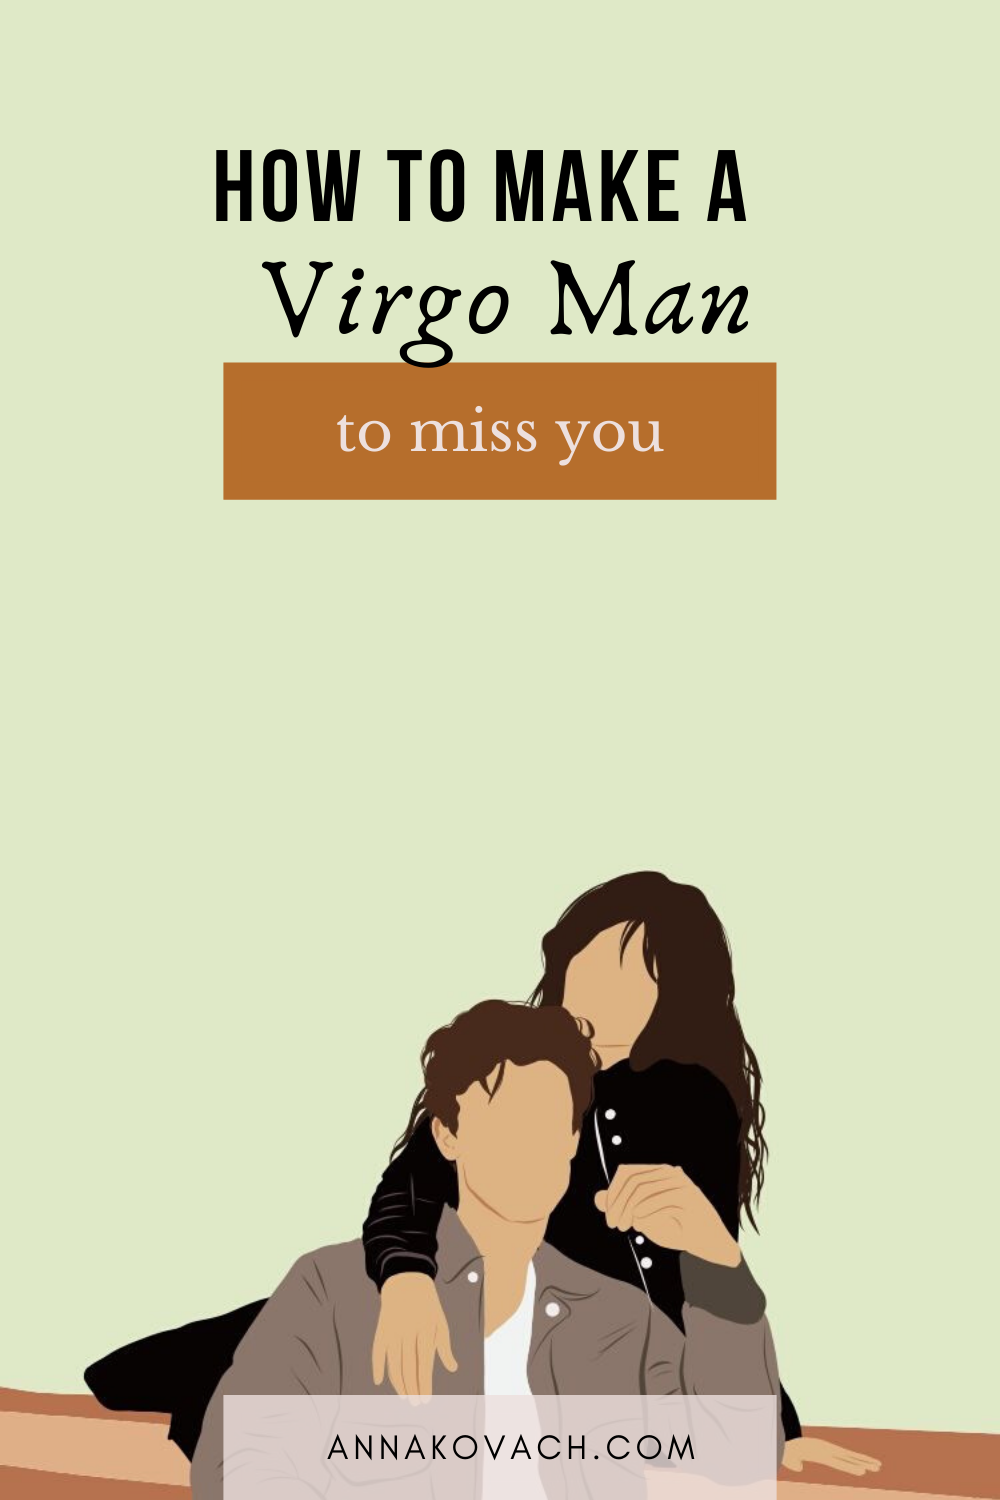 eb72e983b5d934d36332b23d4844042a - How To Get A Virgo Man To Kiss You